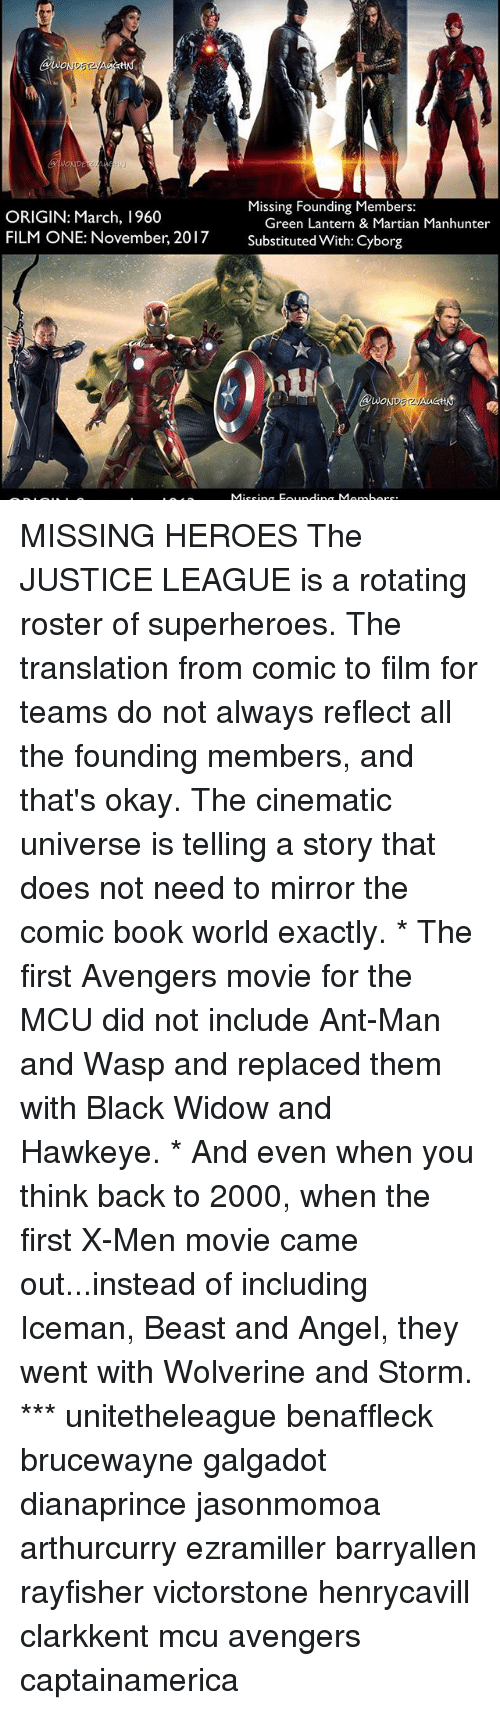 Memes, 🤖, and Mcu: Gwo  Missing Founding Members:  ORIGIN: March, 1960  Green Lantern & Martian Manhunter  FILM ONE: November, 2017  Substituted With: Cyborg  Mioping ind  Mom bore. MISSING HEROES The JUSTICE LEAGUE is a rotating roster of superheroes. The translation from comic to film for teams do not always reflect all the founding members, and that's okay. The cinematic universe is telling a story that does not need to mirror the comic book world exactly. * The first Avengers movie for the MCU did not include Ant-Man and Wasp and replaced them with Black Widow and Hawkeye. * And even when you think back to 2000, when the first X-Men movie came out...instead of including Iceman, Beast and Angel, they went with Wolverine and Storm. *** unitetheleague benaffleck brucewayne galgadot dianaprince jasonmomoa arthurcurry ezramiller barryallen rayfisher victorstone henrycavill clarkkent mcu avengers captainamerica